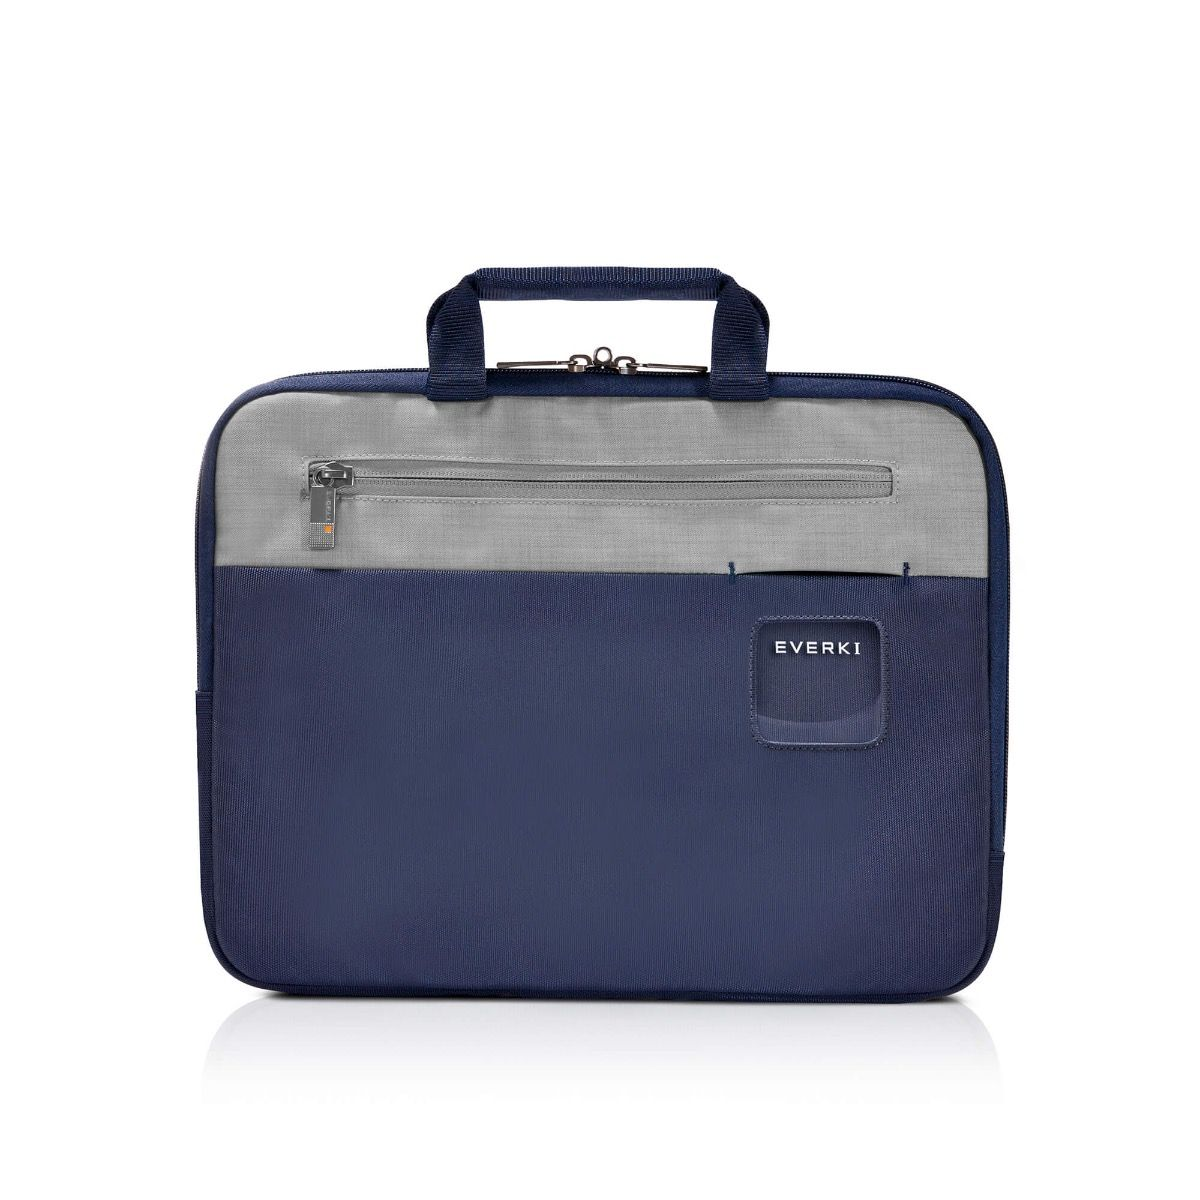 EVERKI ContemPRO 13 Inch Navy Laptop Sleeve